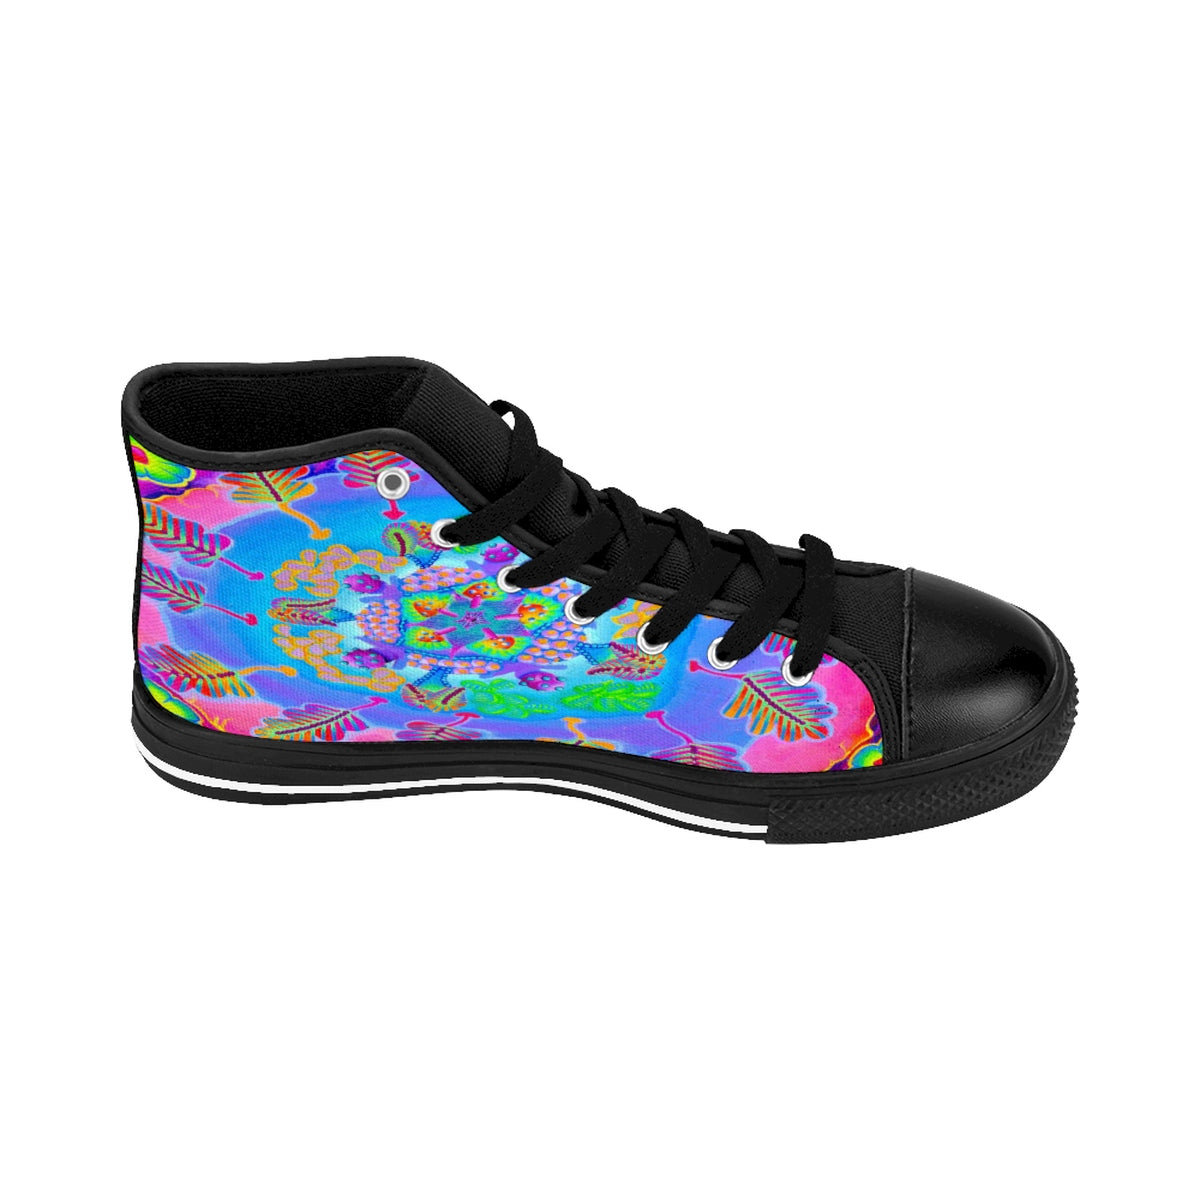 NaturePie High-top Sneakers